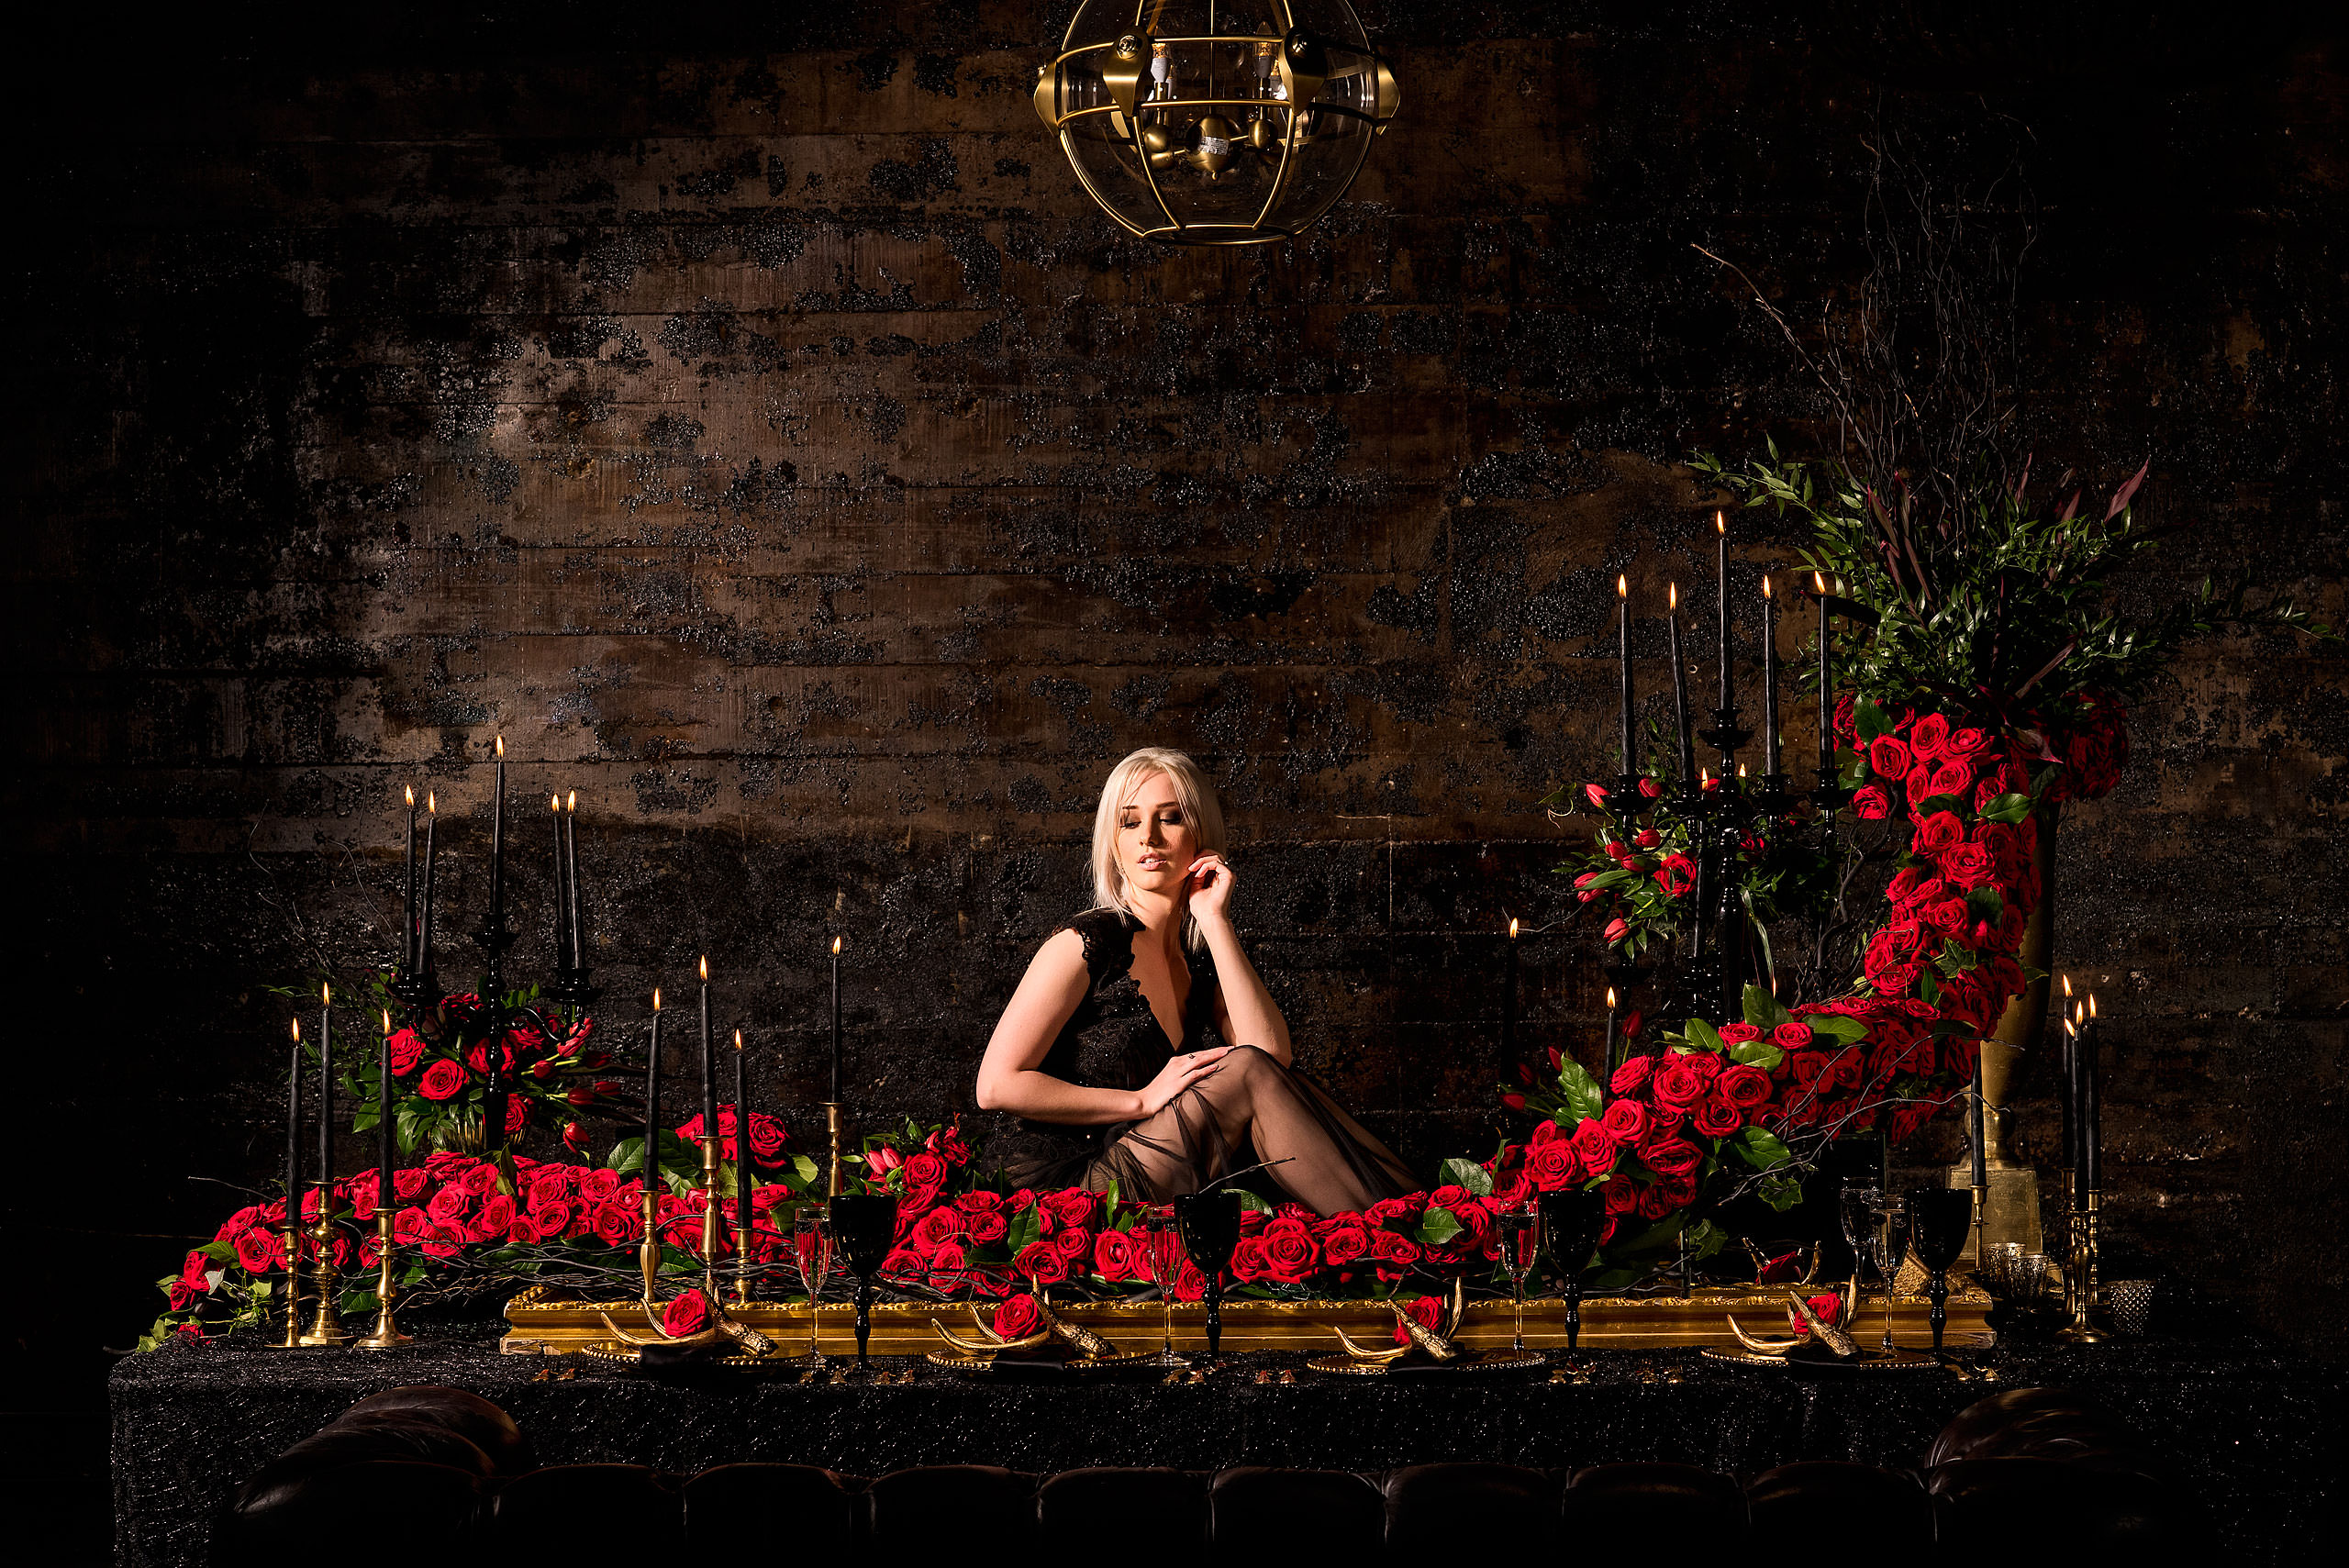 young female model posed on a table surrounded by roses by calgary confetti fashion photographer sean leblanc